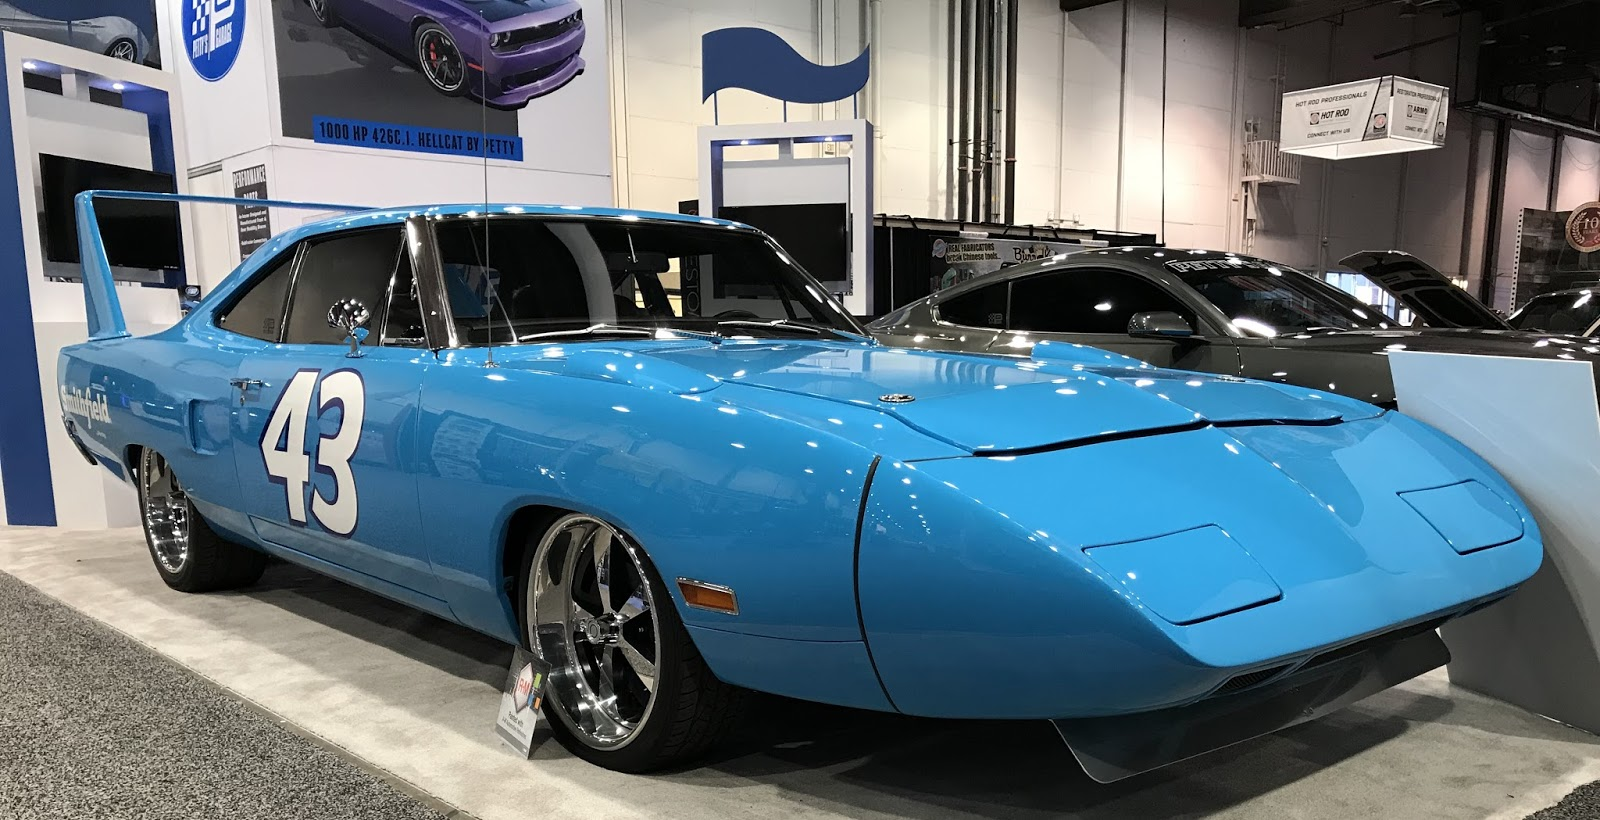 972ecc2a I thought I'd posted about it, but it seems I haven't yet, so, here's the  Petty Superbird tribute by Smithfield Foods give away car from 2017 SEMA  that Mike ...